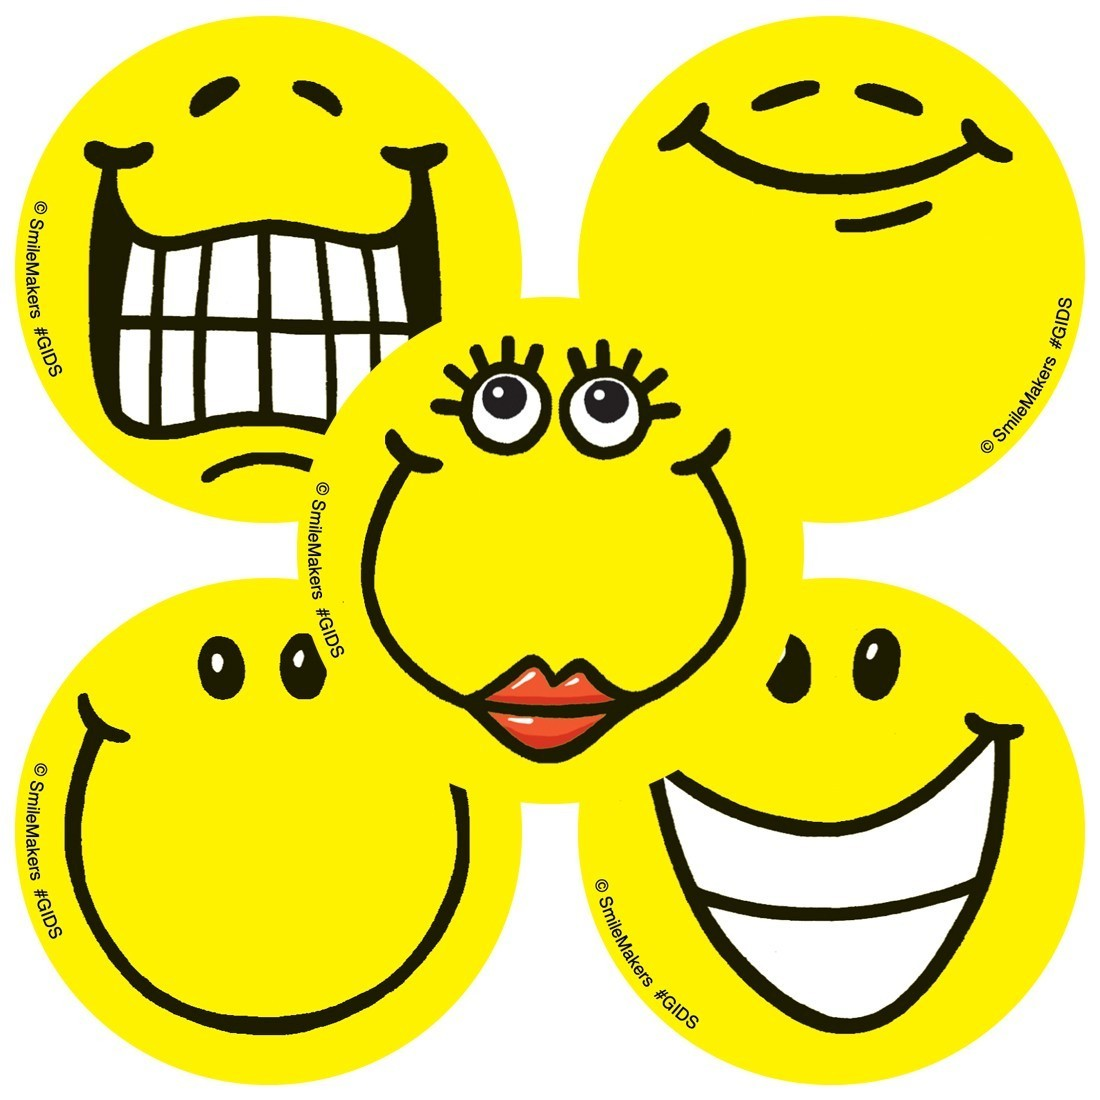 Glow in the Dark Smiley Face Stickers              [image]